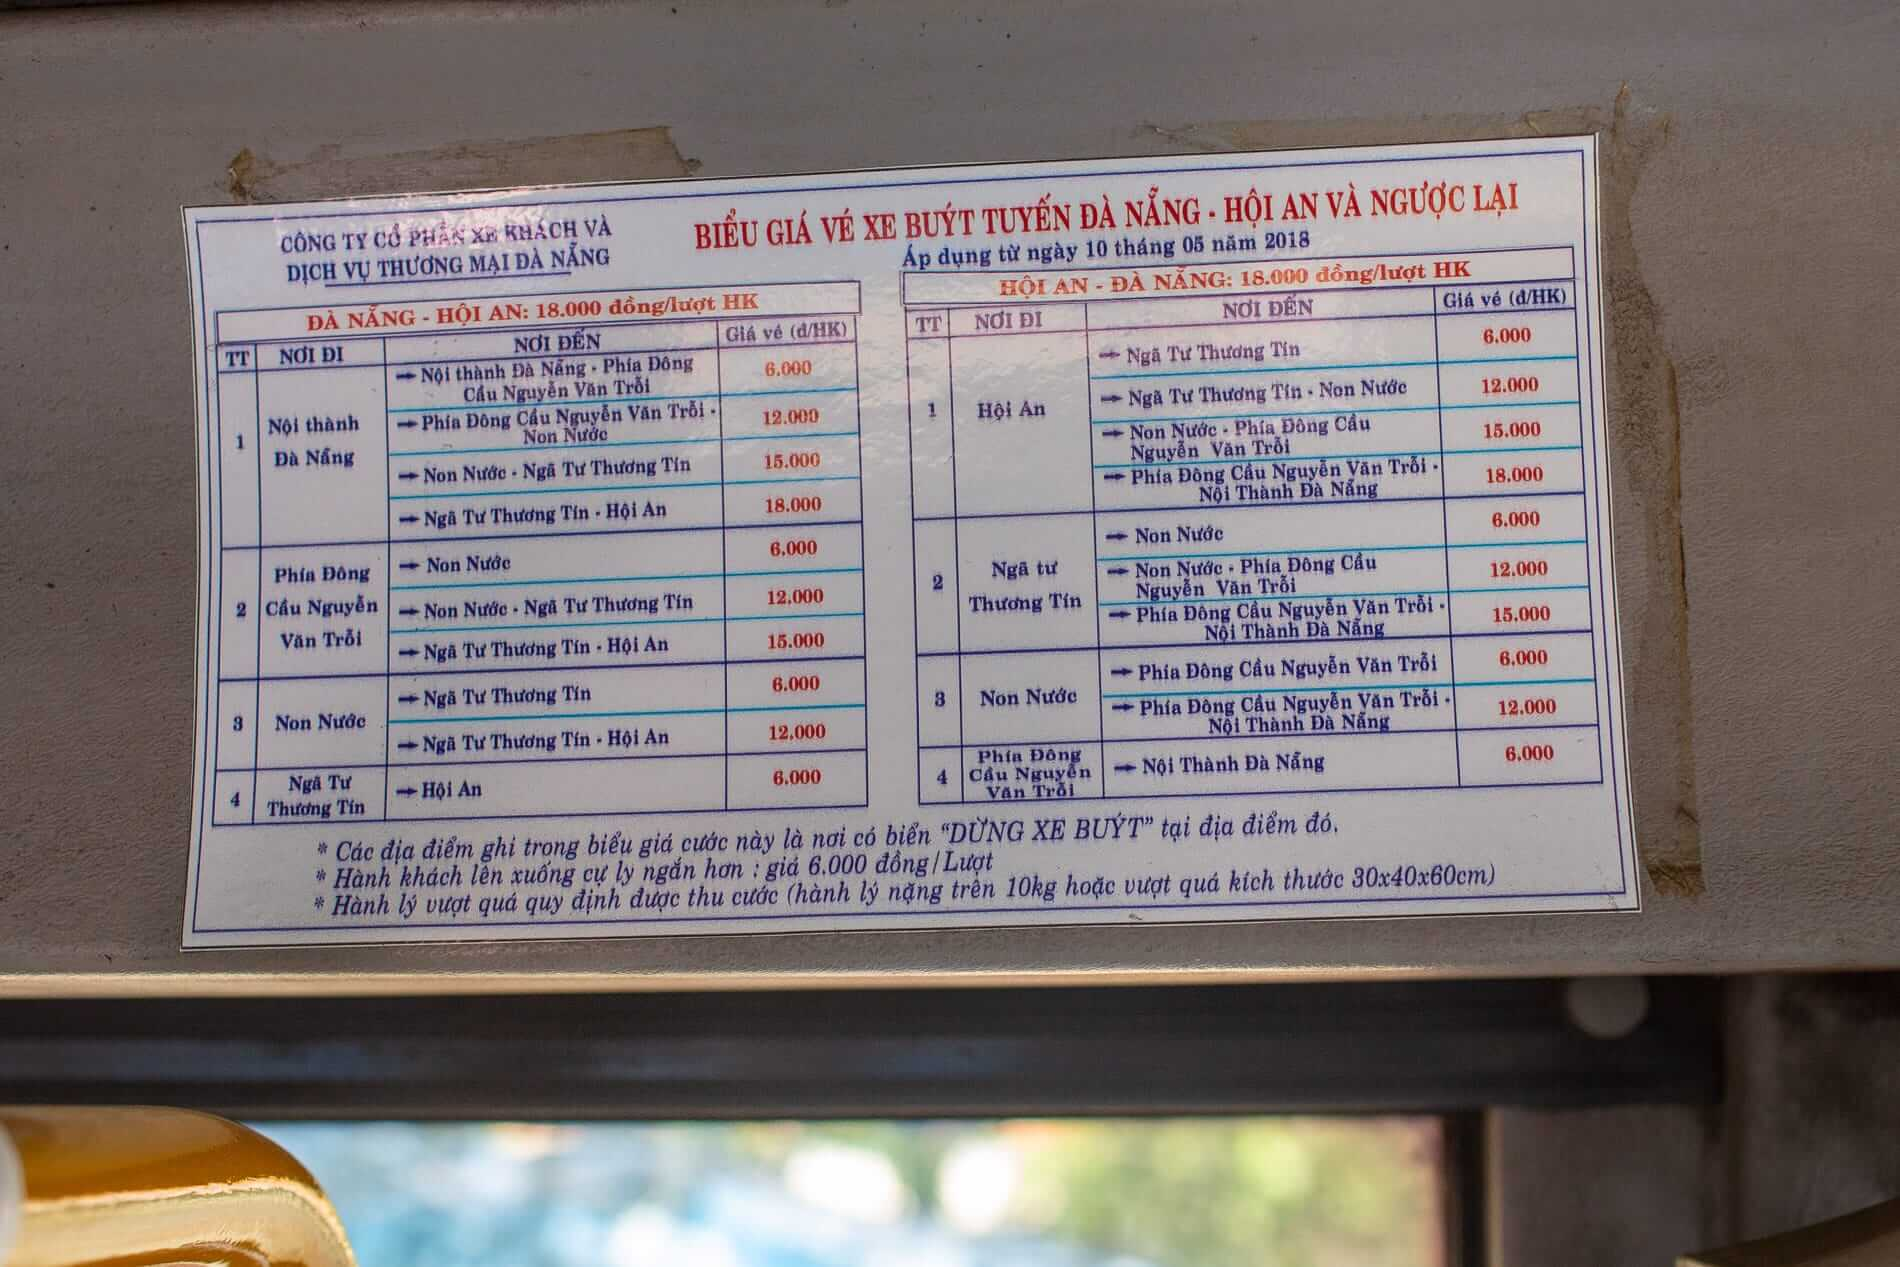 bus fare riding the Bus 1 Da Nang to Hoi An